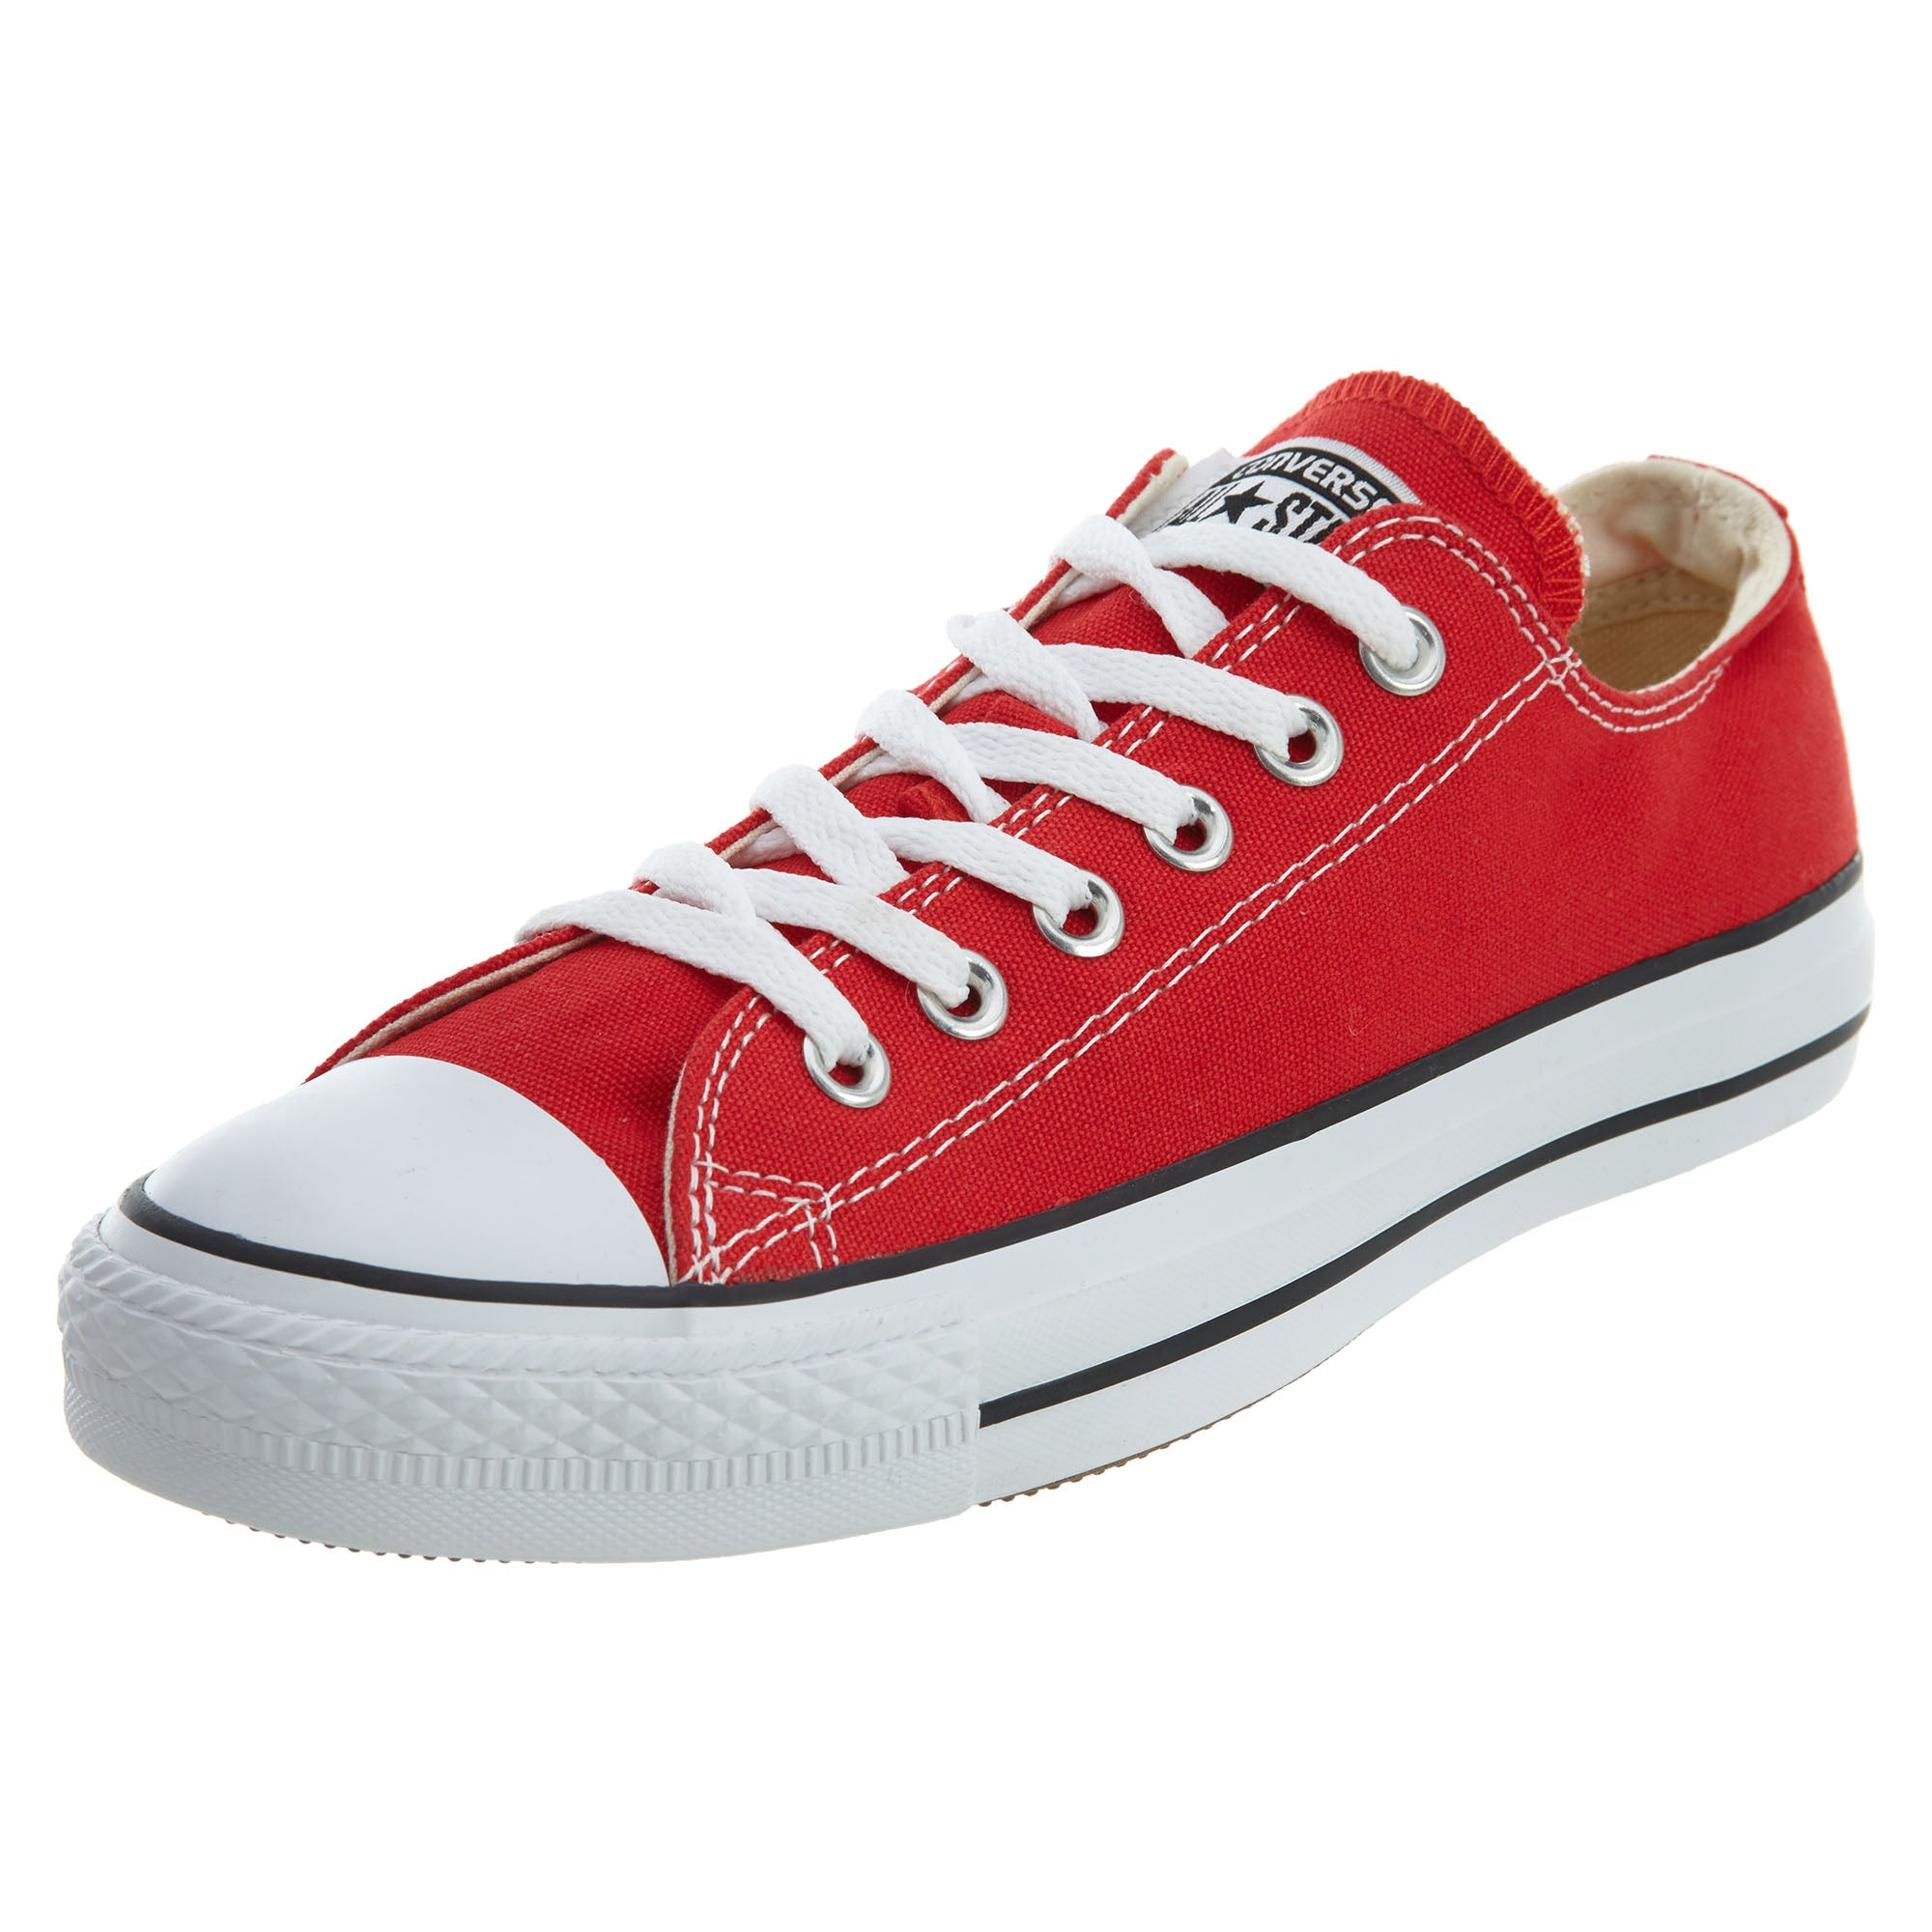 87afd049c705 Converse Chuck Taylor All Star Core Ox Unisex Style   M9696c – TheEagleShoes